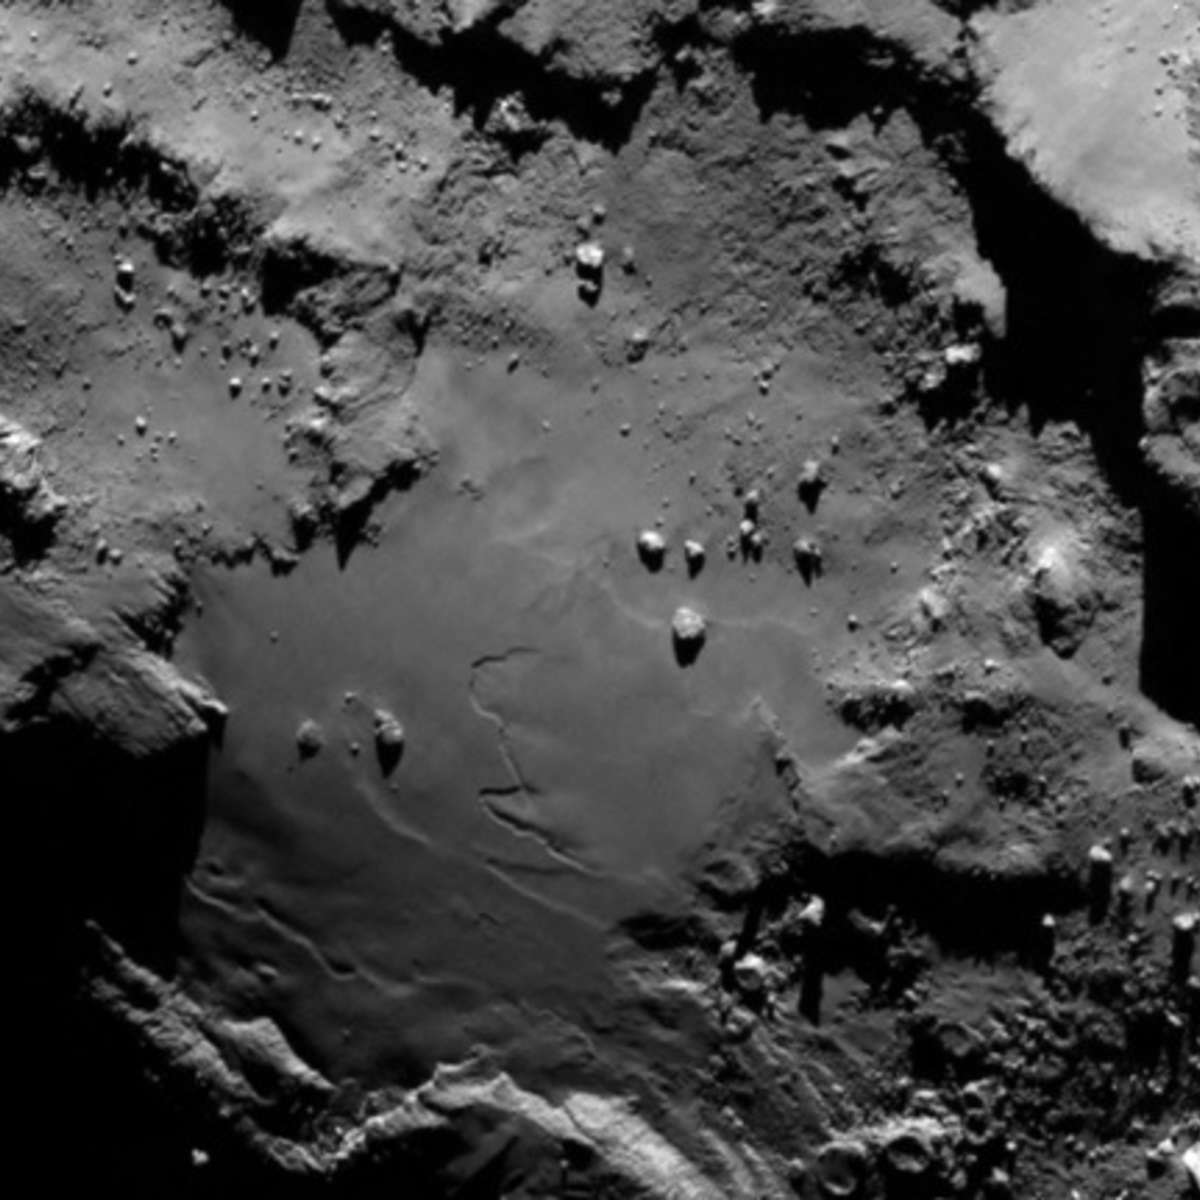 comet-67p-detail-base-body.jpg